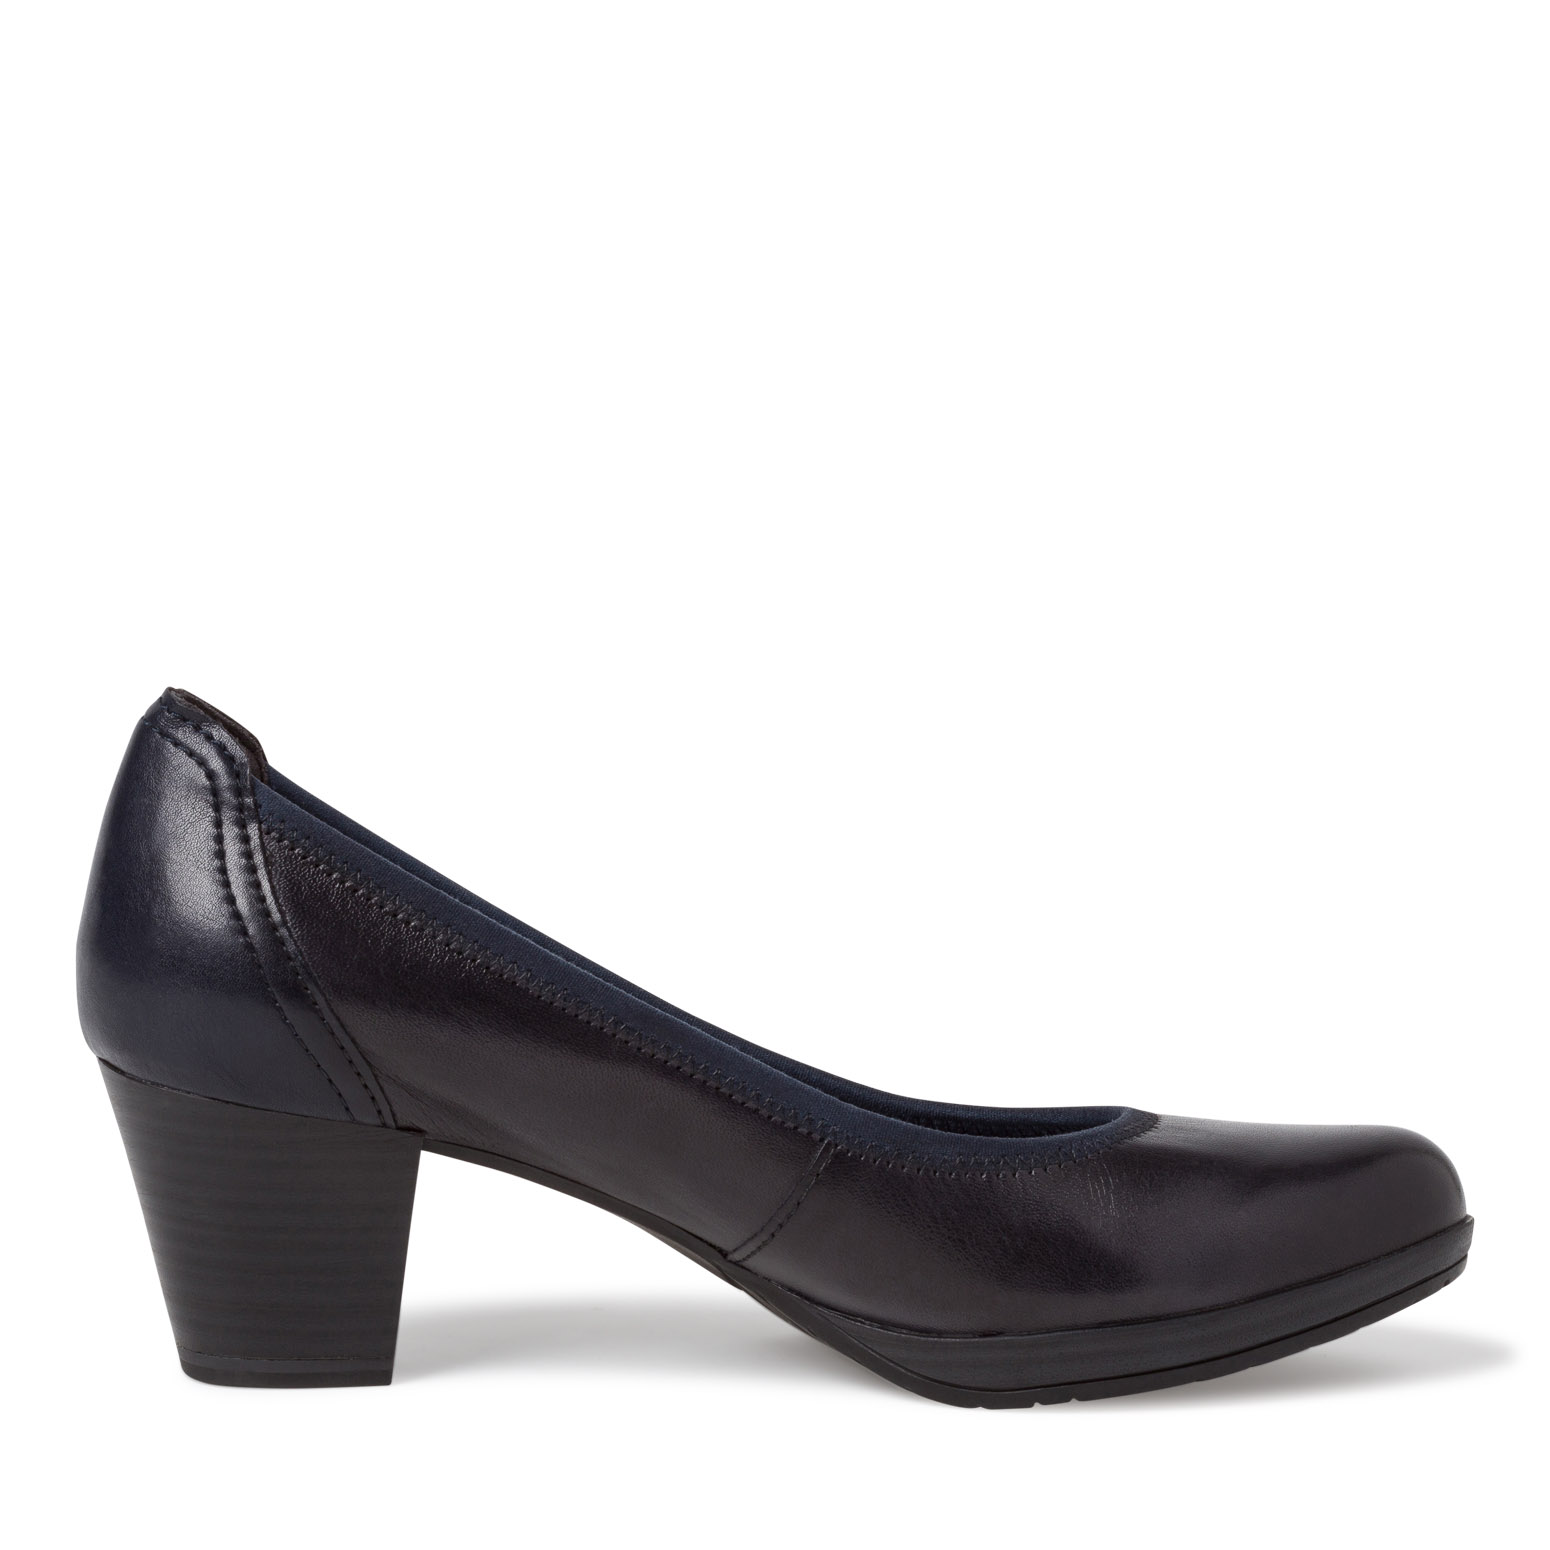 Leather Pumps - blue, NAVY NAPPA, hi-res